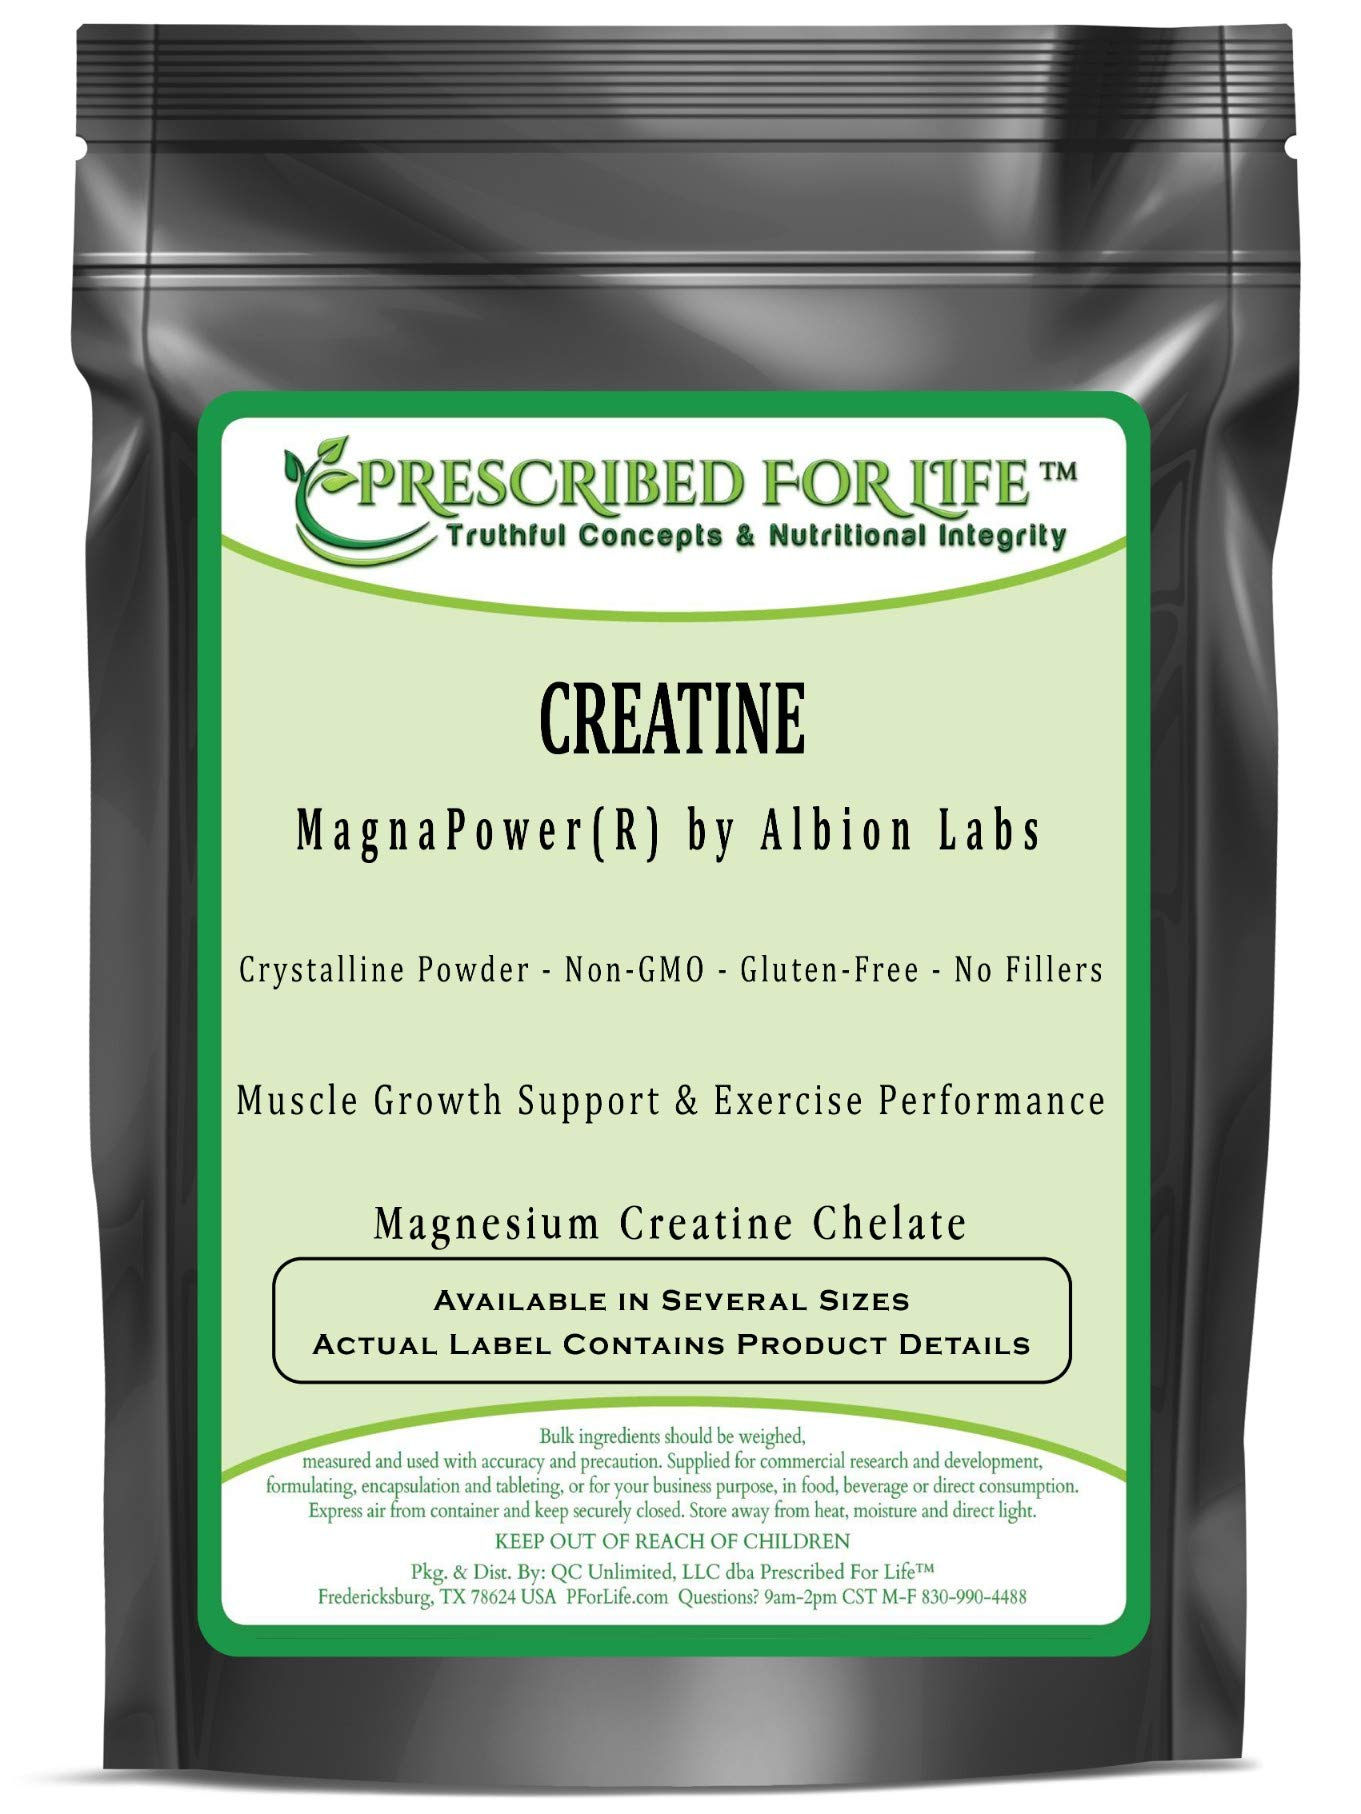 Creatine MangnaPower (R) - Magnesium Creatine Chelate by Albion, 2 kg